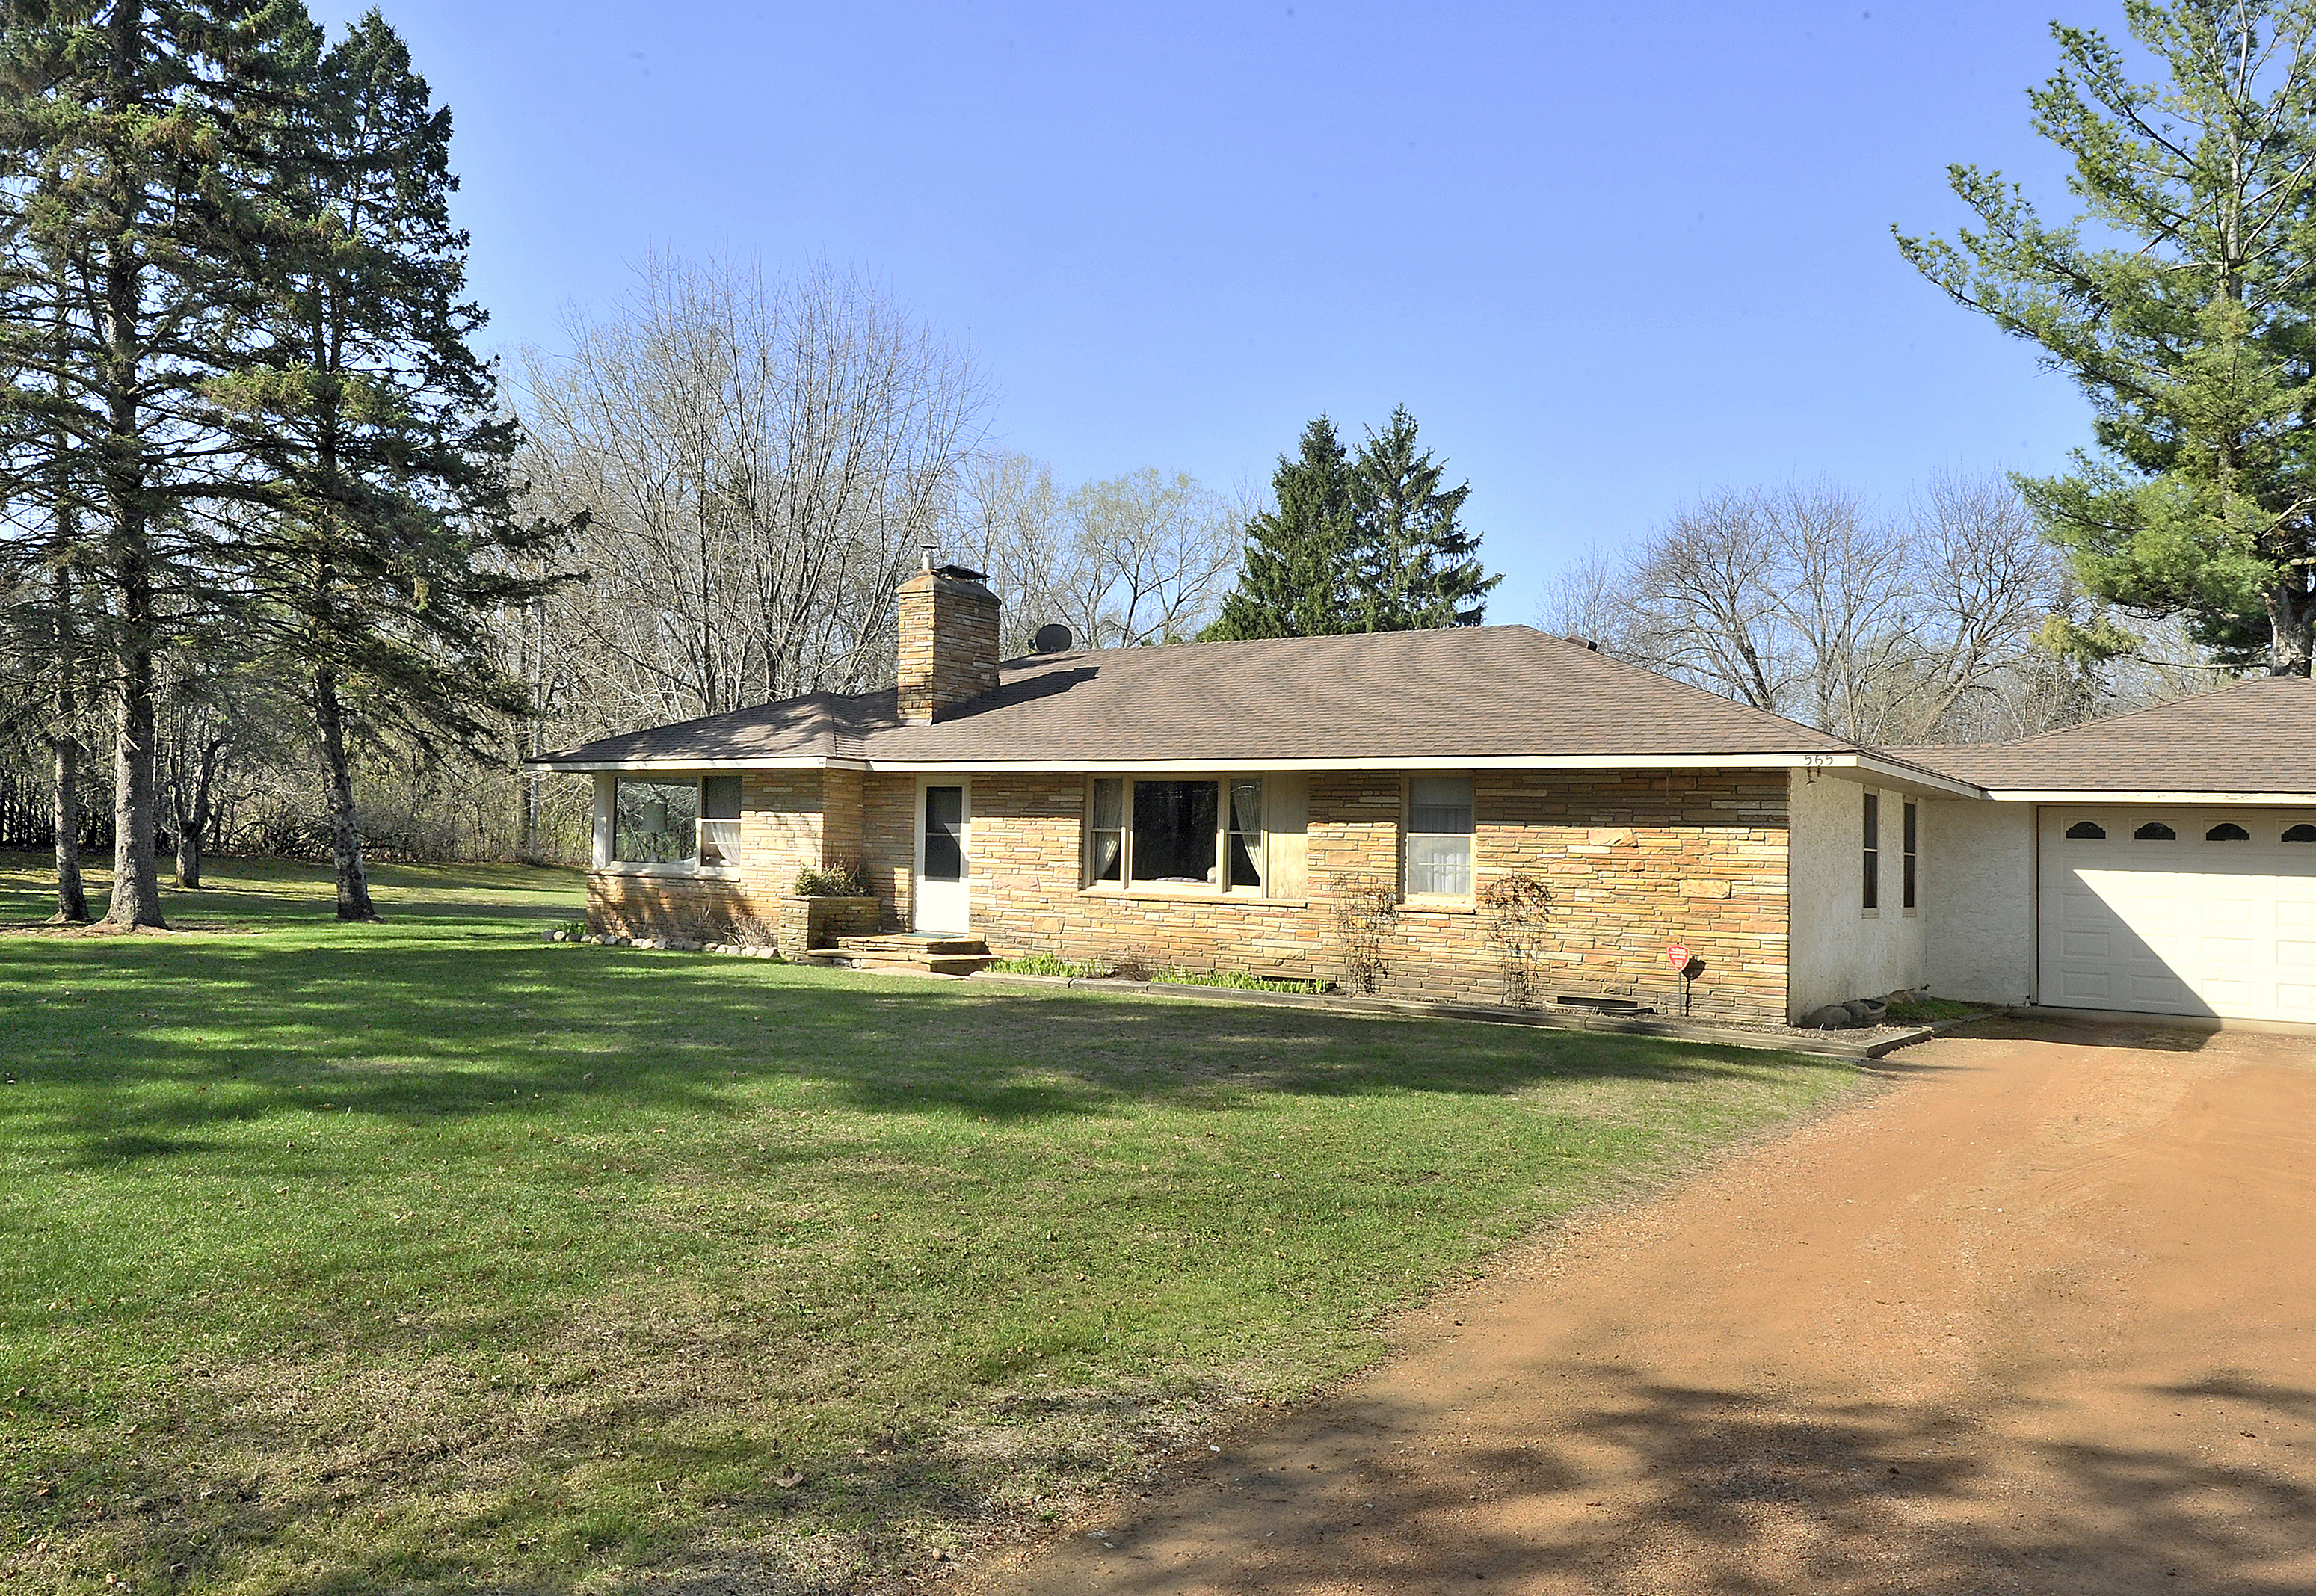 5611 sheldon road - 565 Ferndale Road N Orono Sold 390 000 3 Bed 2 Bath 1 662 Square Feet Represented Seller